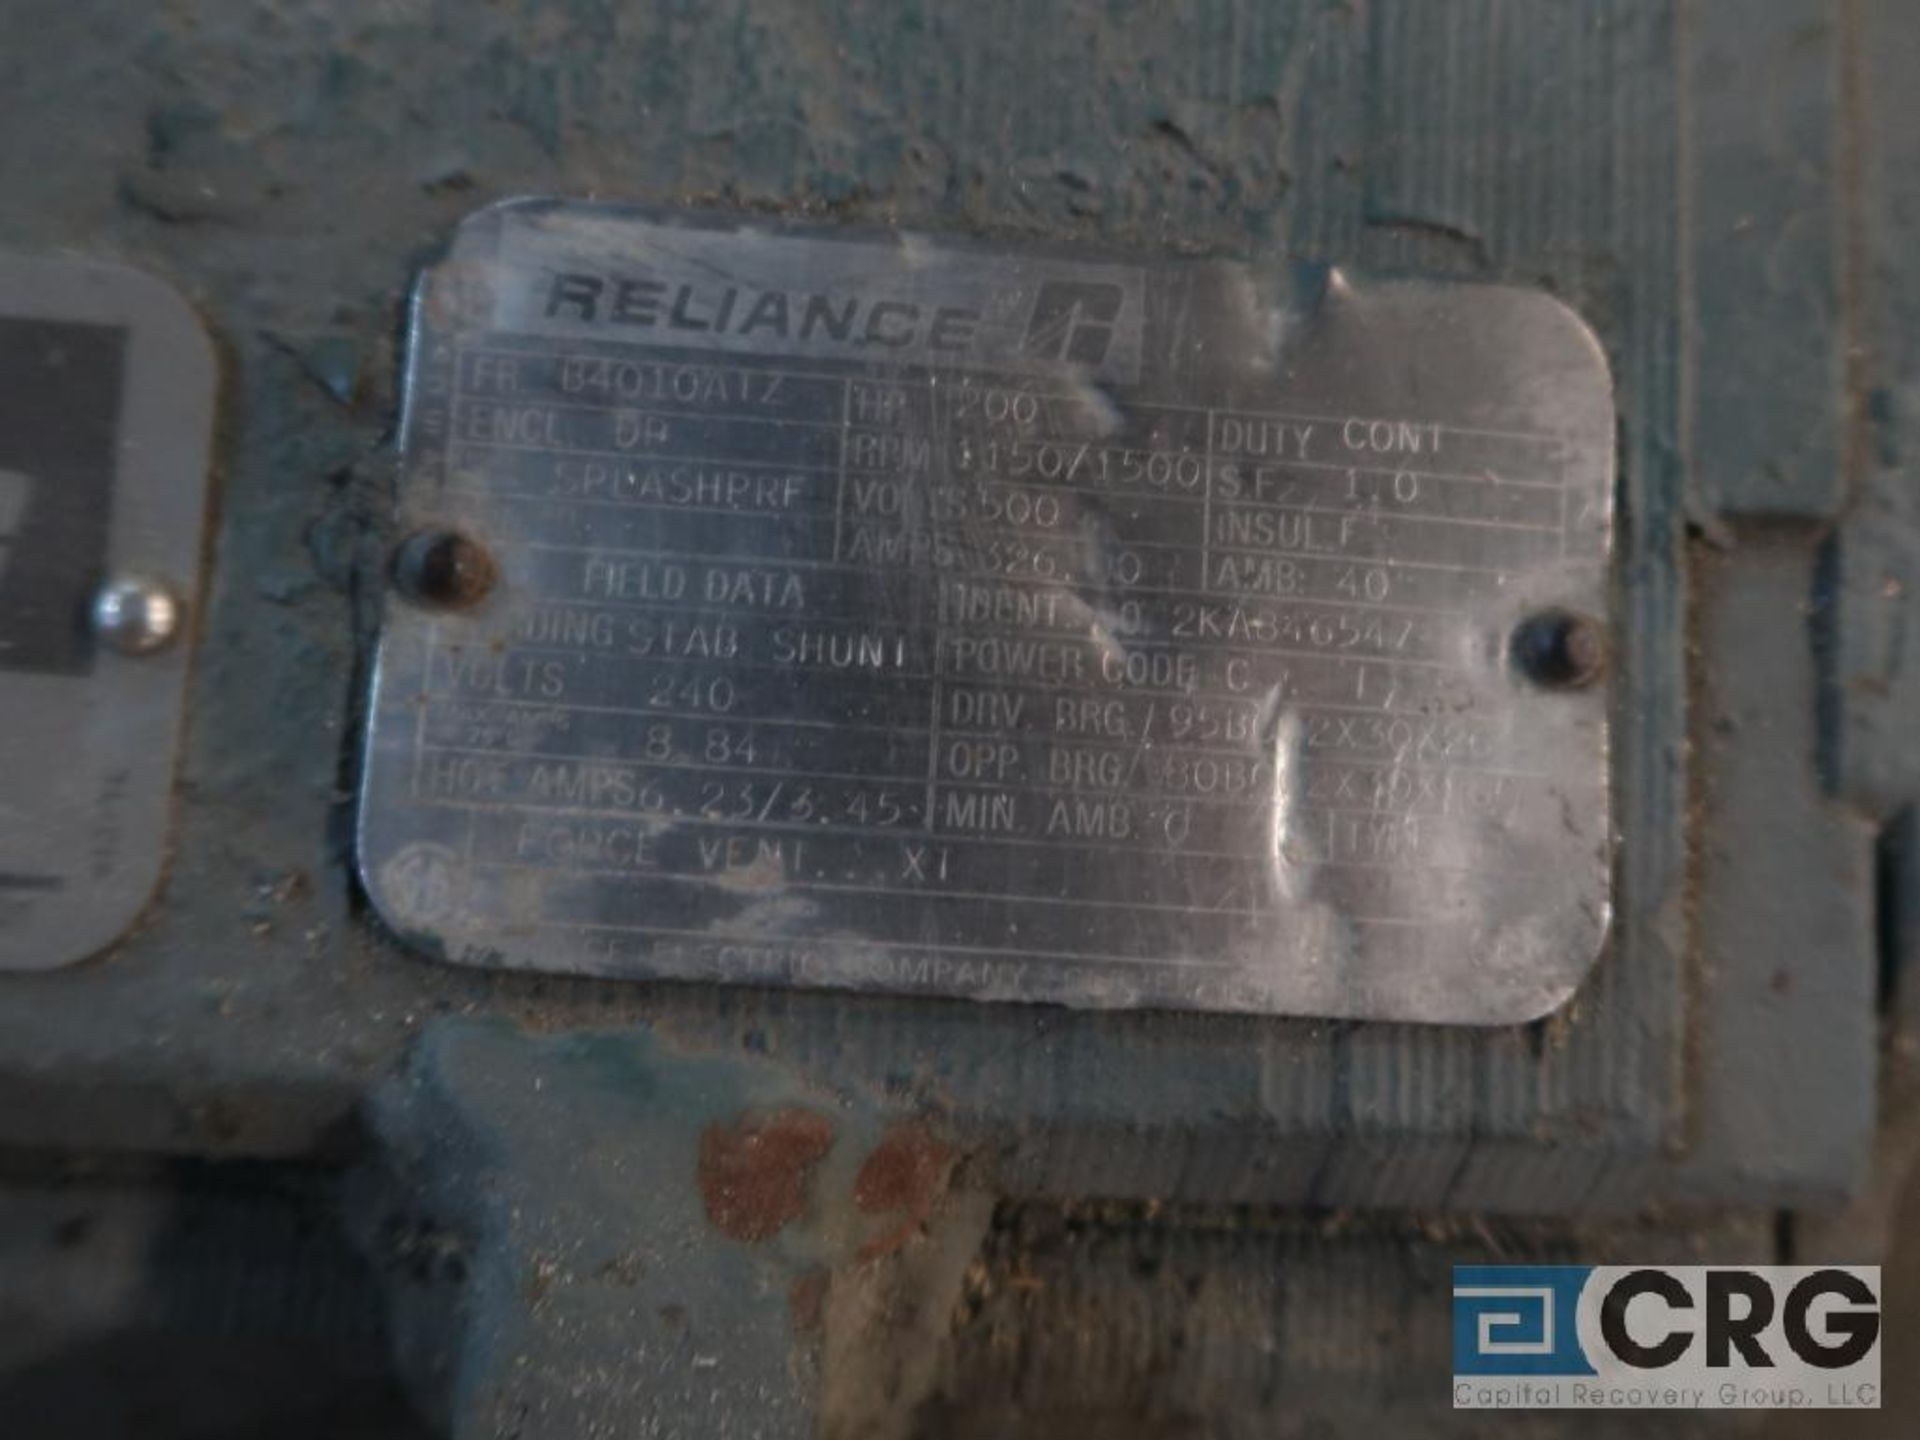 Reliance electric motor, DC, 200 HP, 1,150/1,500 RPMs, 500 volt, B4010ATZ frame (Finish Building) - Image 2 of 2